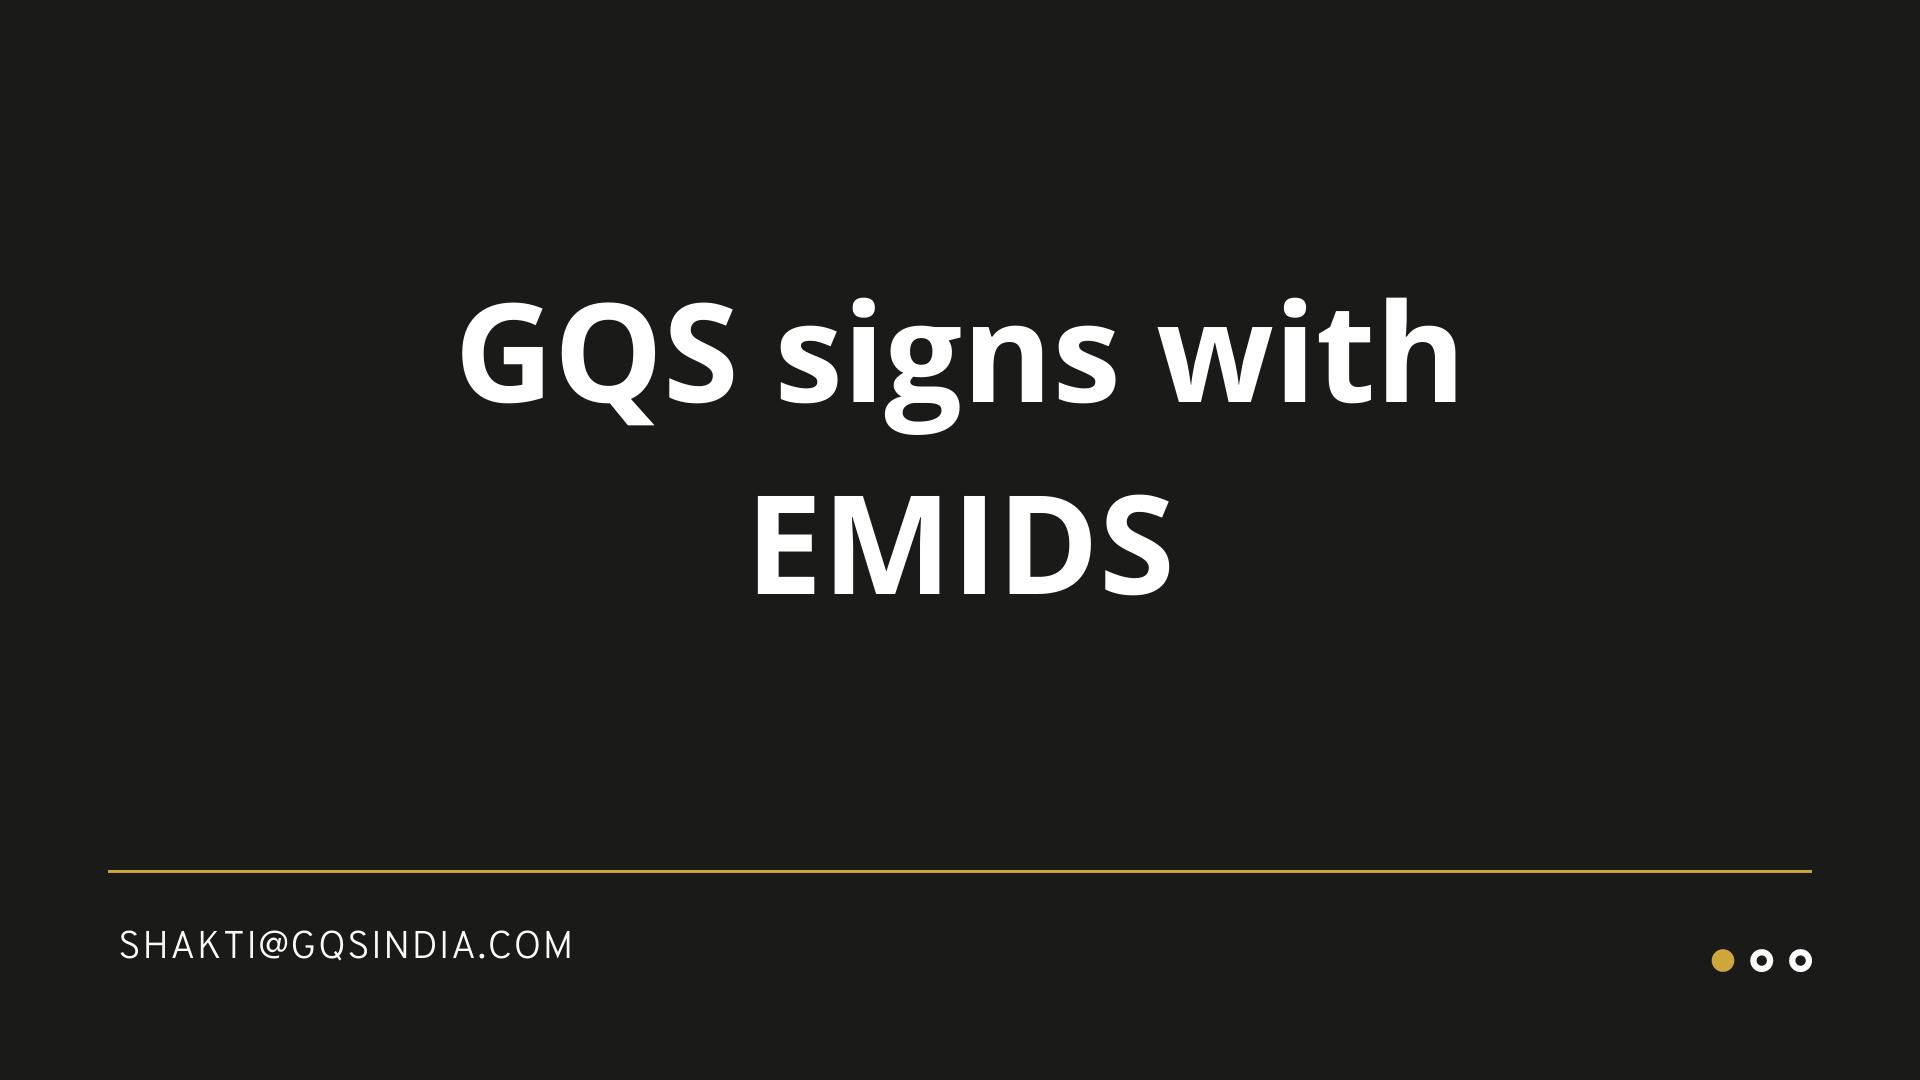 GQS signs with EMIDS